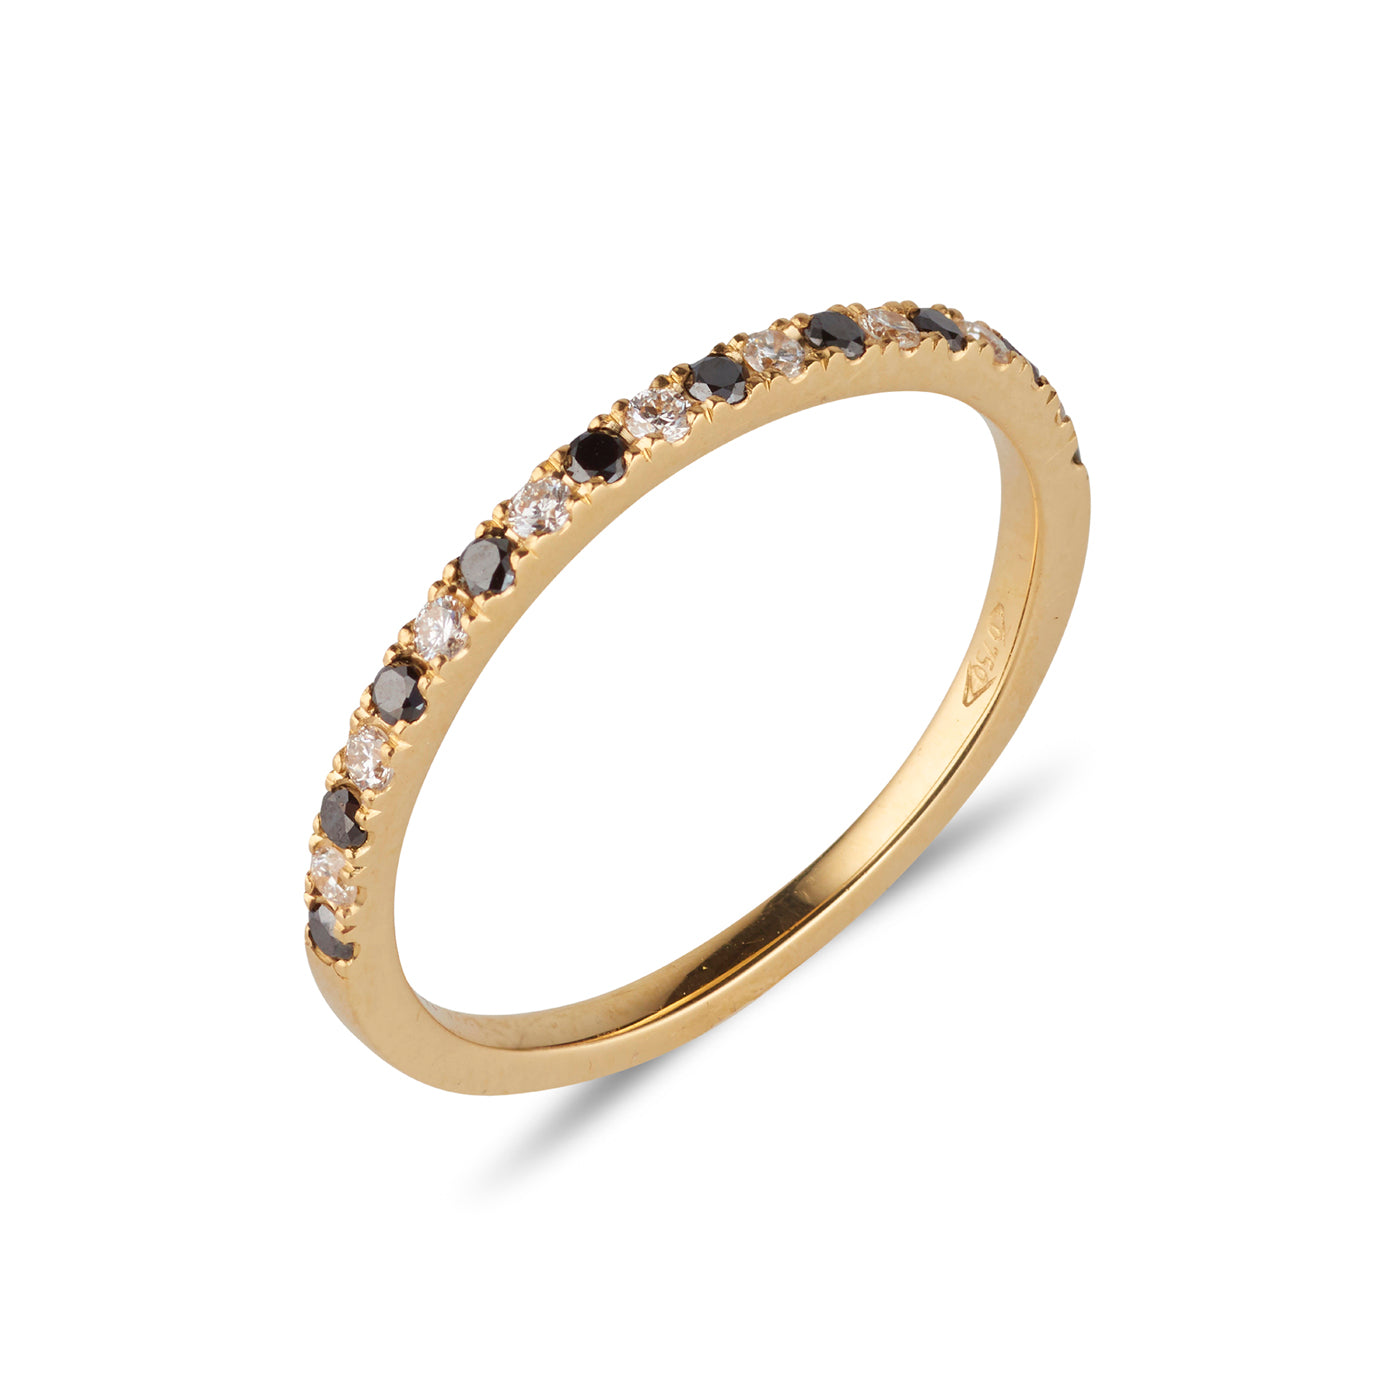 9kt Yellow Gold Band with Black & White Diamonds - MoMuse Jewellery